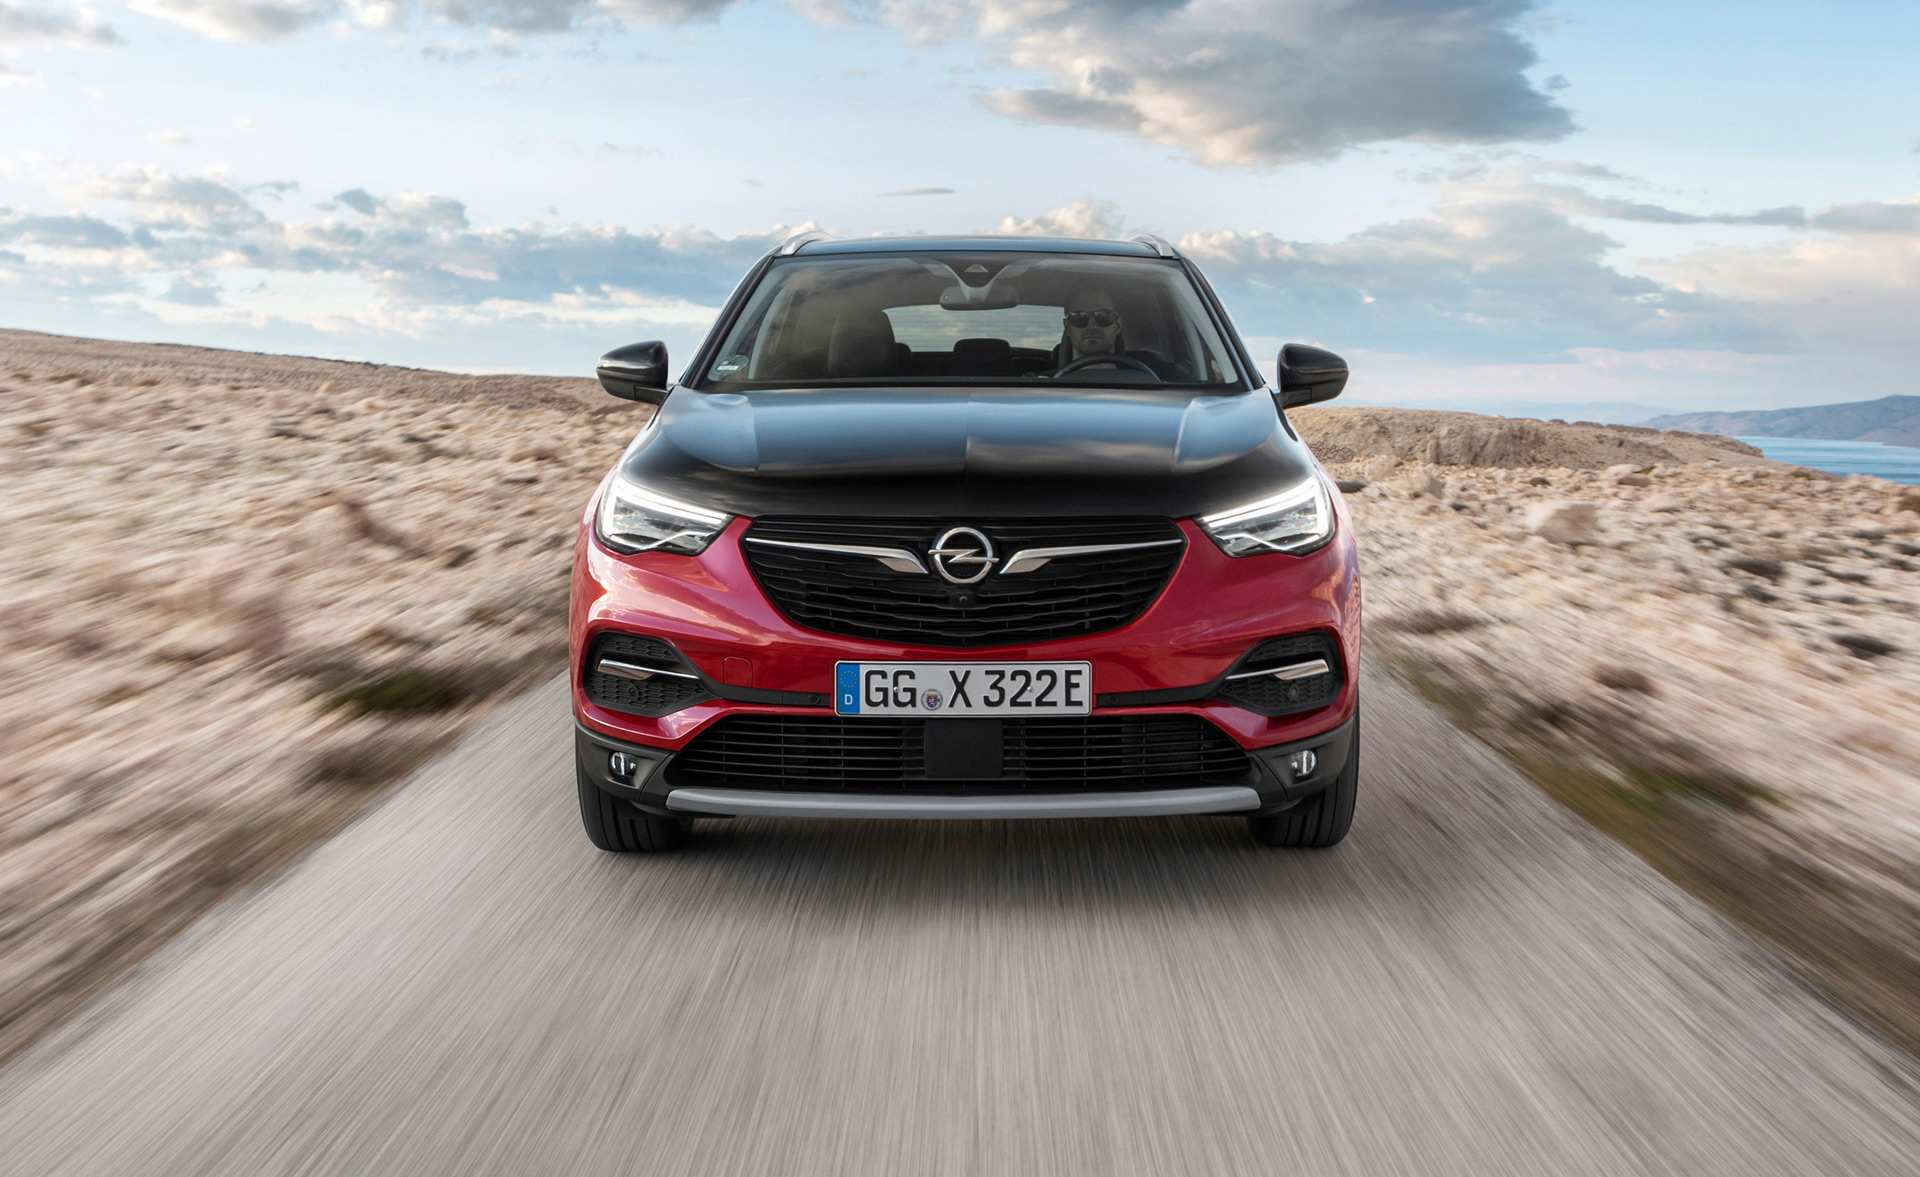 41 All New Opel News 2020 Photos for Opel News 2020